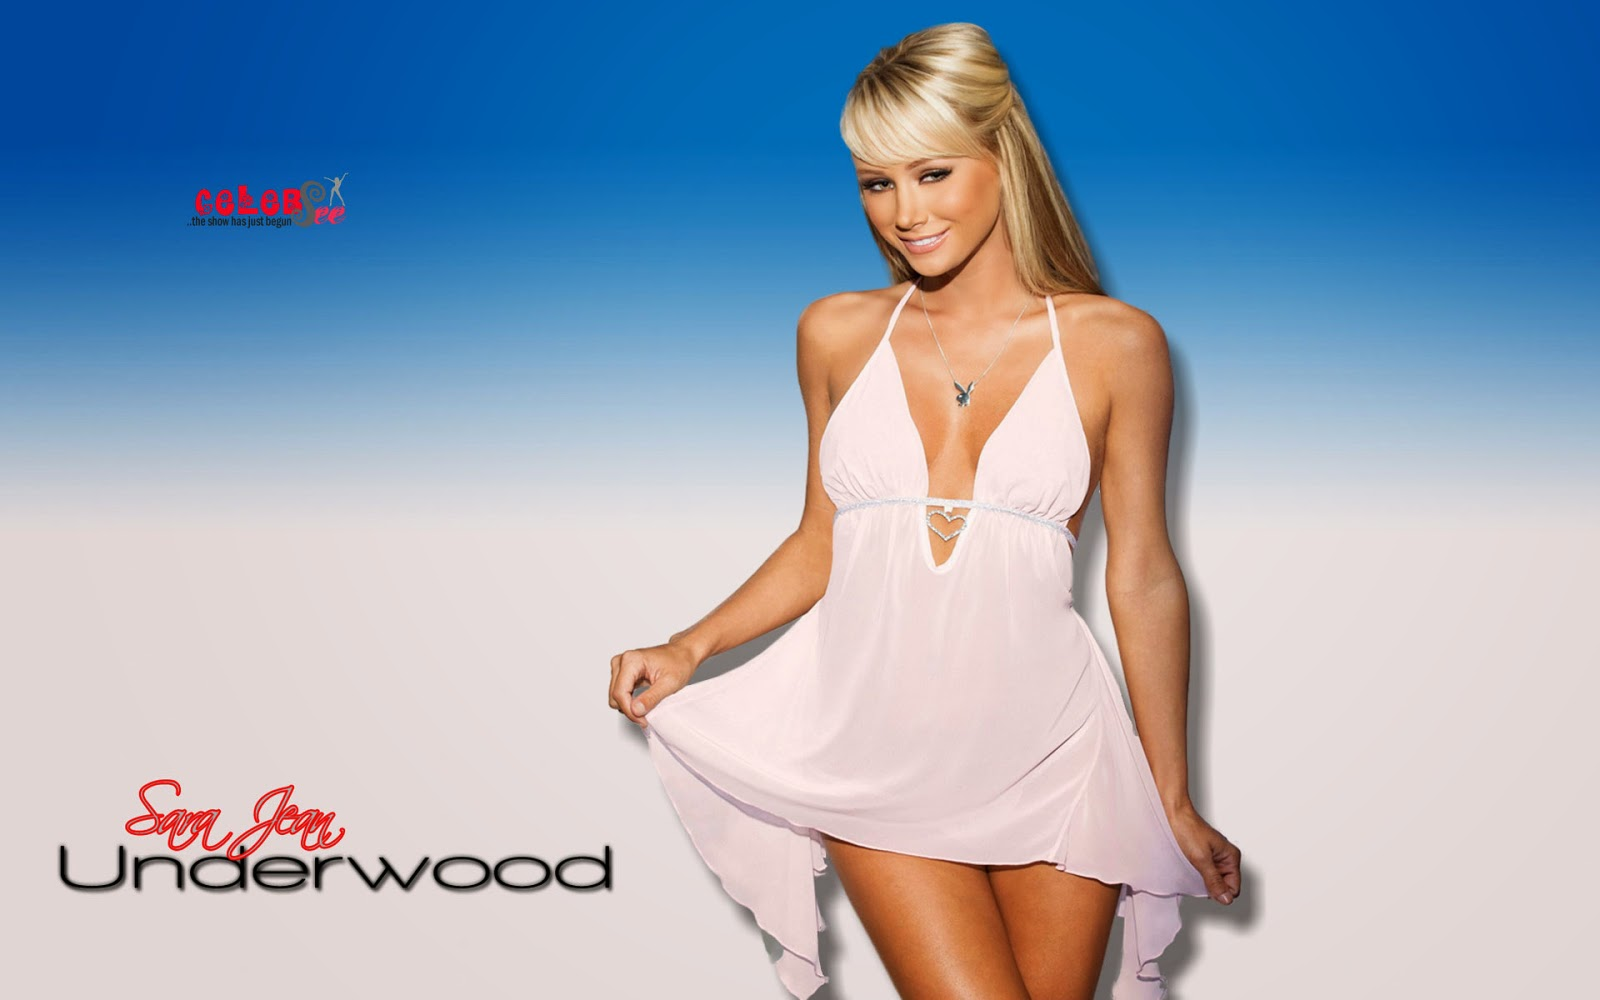 image Sara jean underwood american icon photoshoot